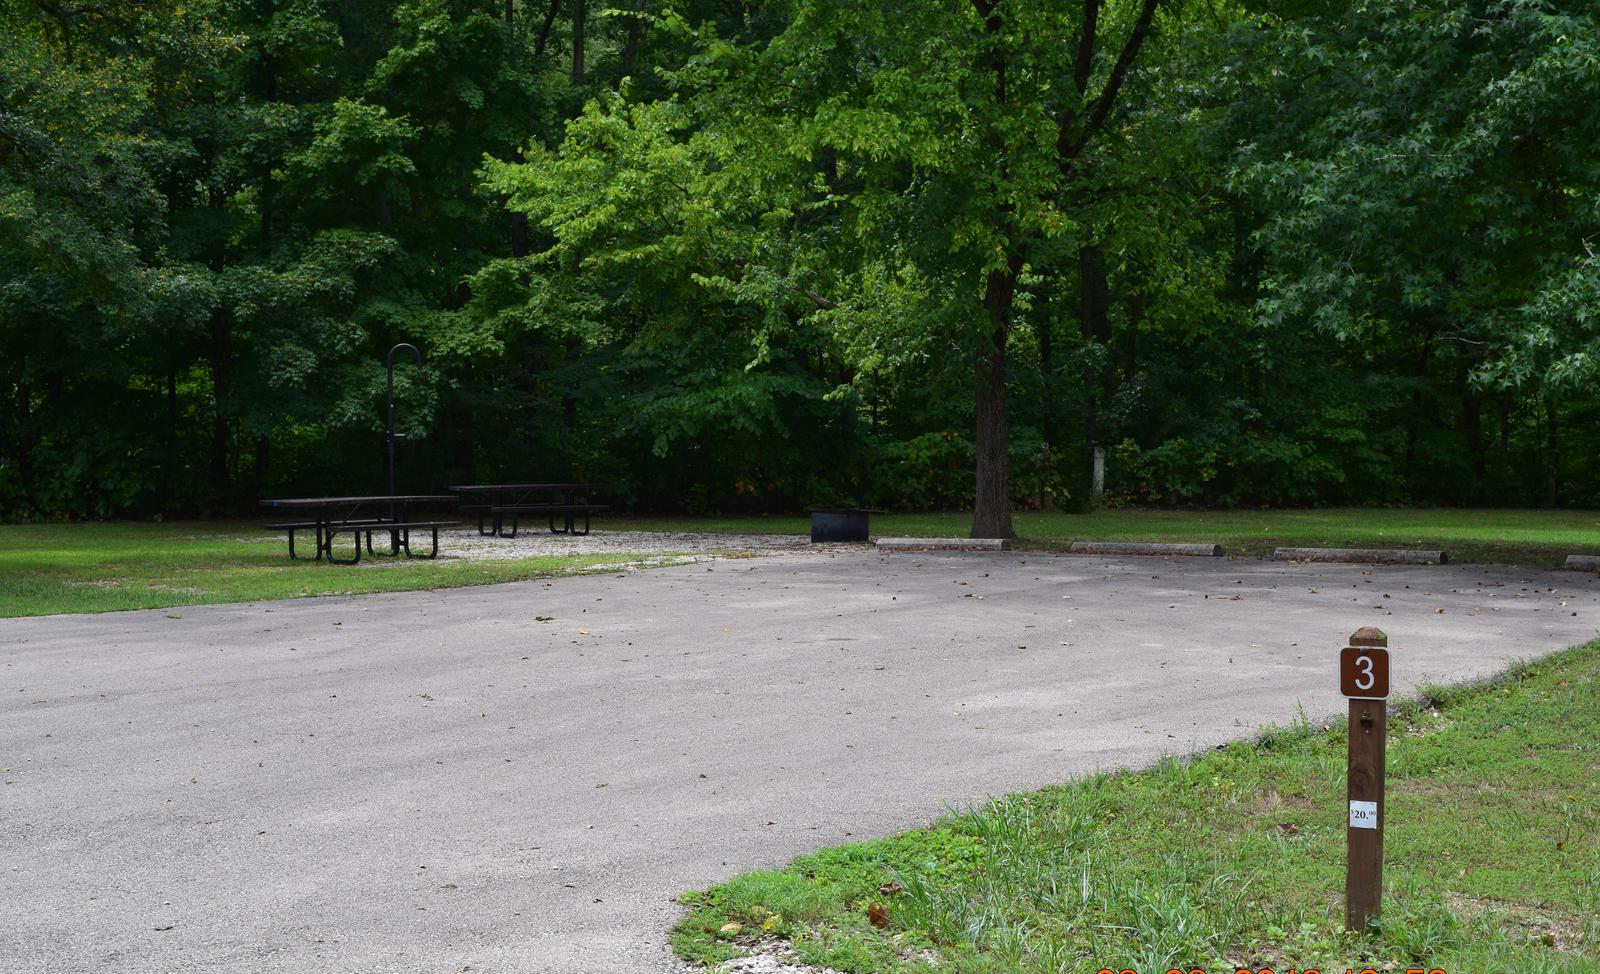 Campsite 3 show double wide parking spur, picnic tables, lantern post and fire ringCampsite 3